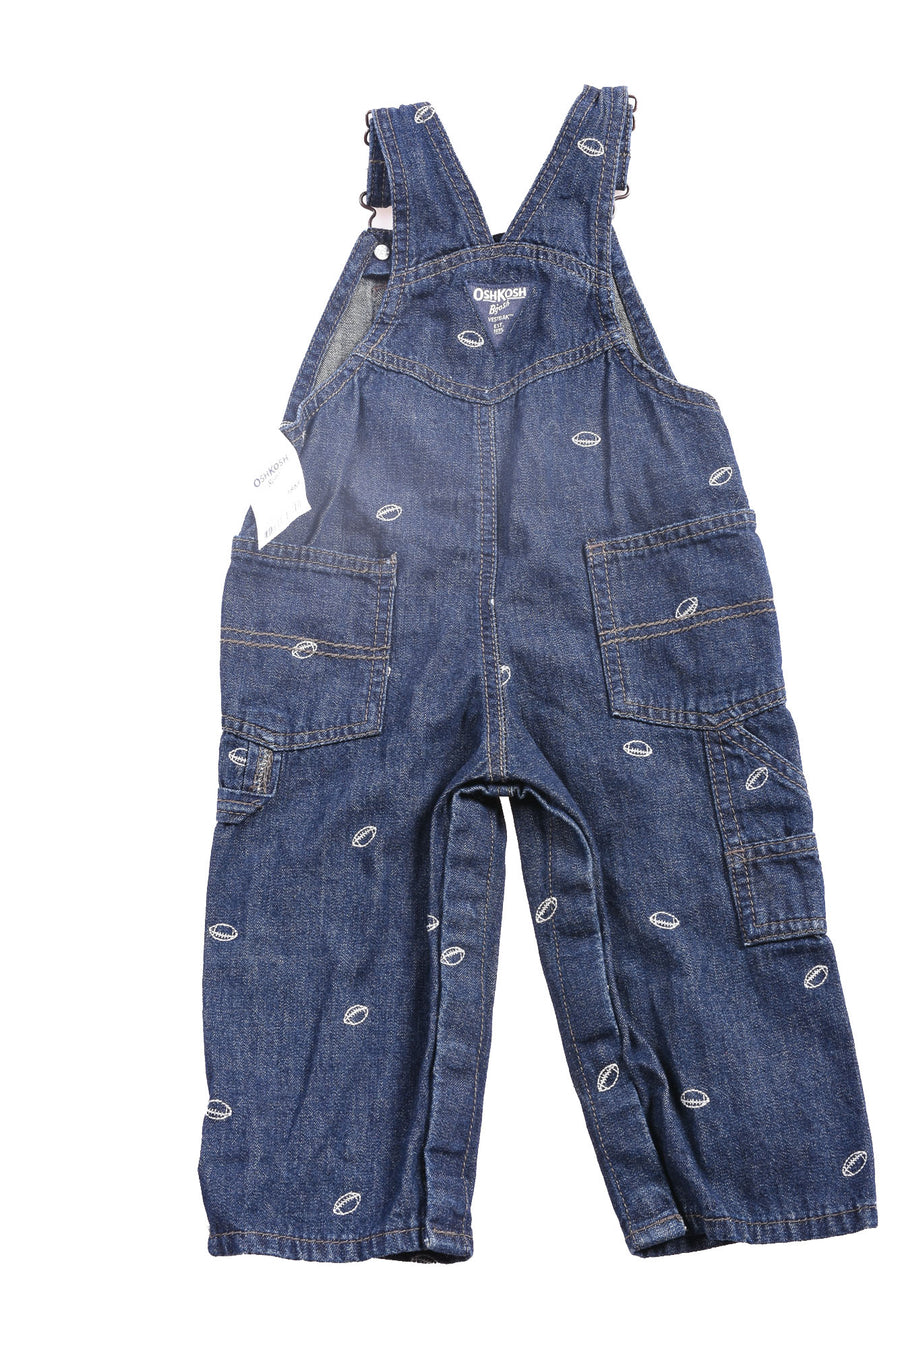 NEW Oshkosh Baby Boy's Overall Pants 18 Months Blue